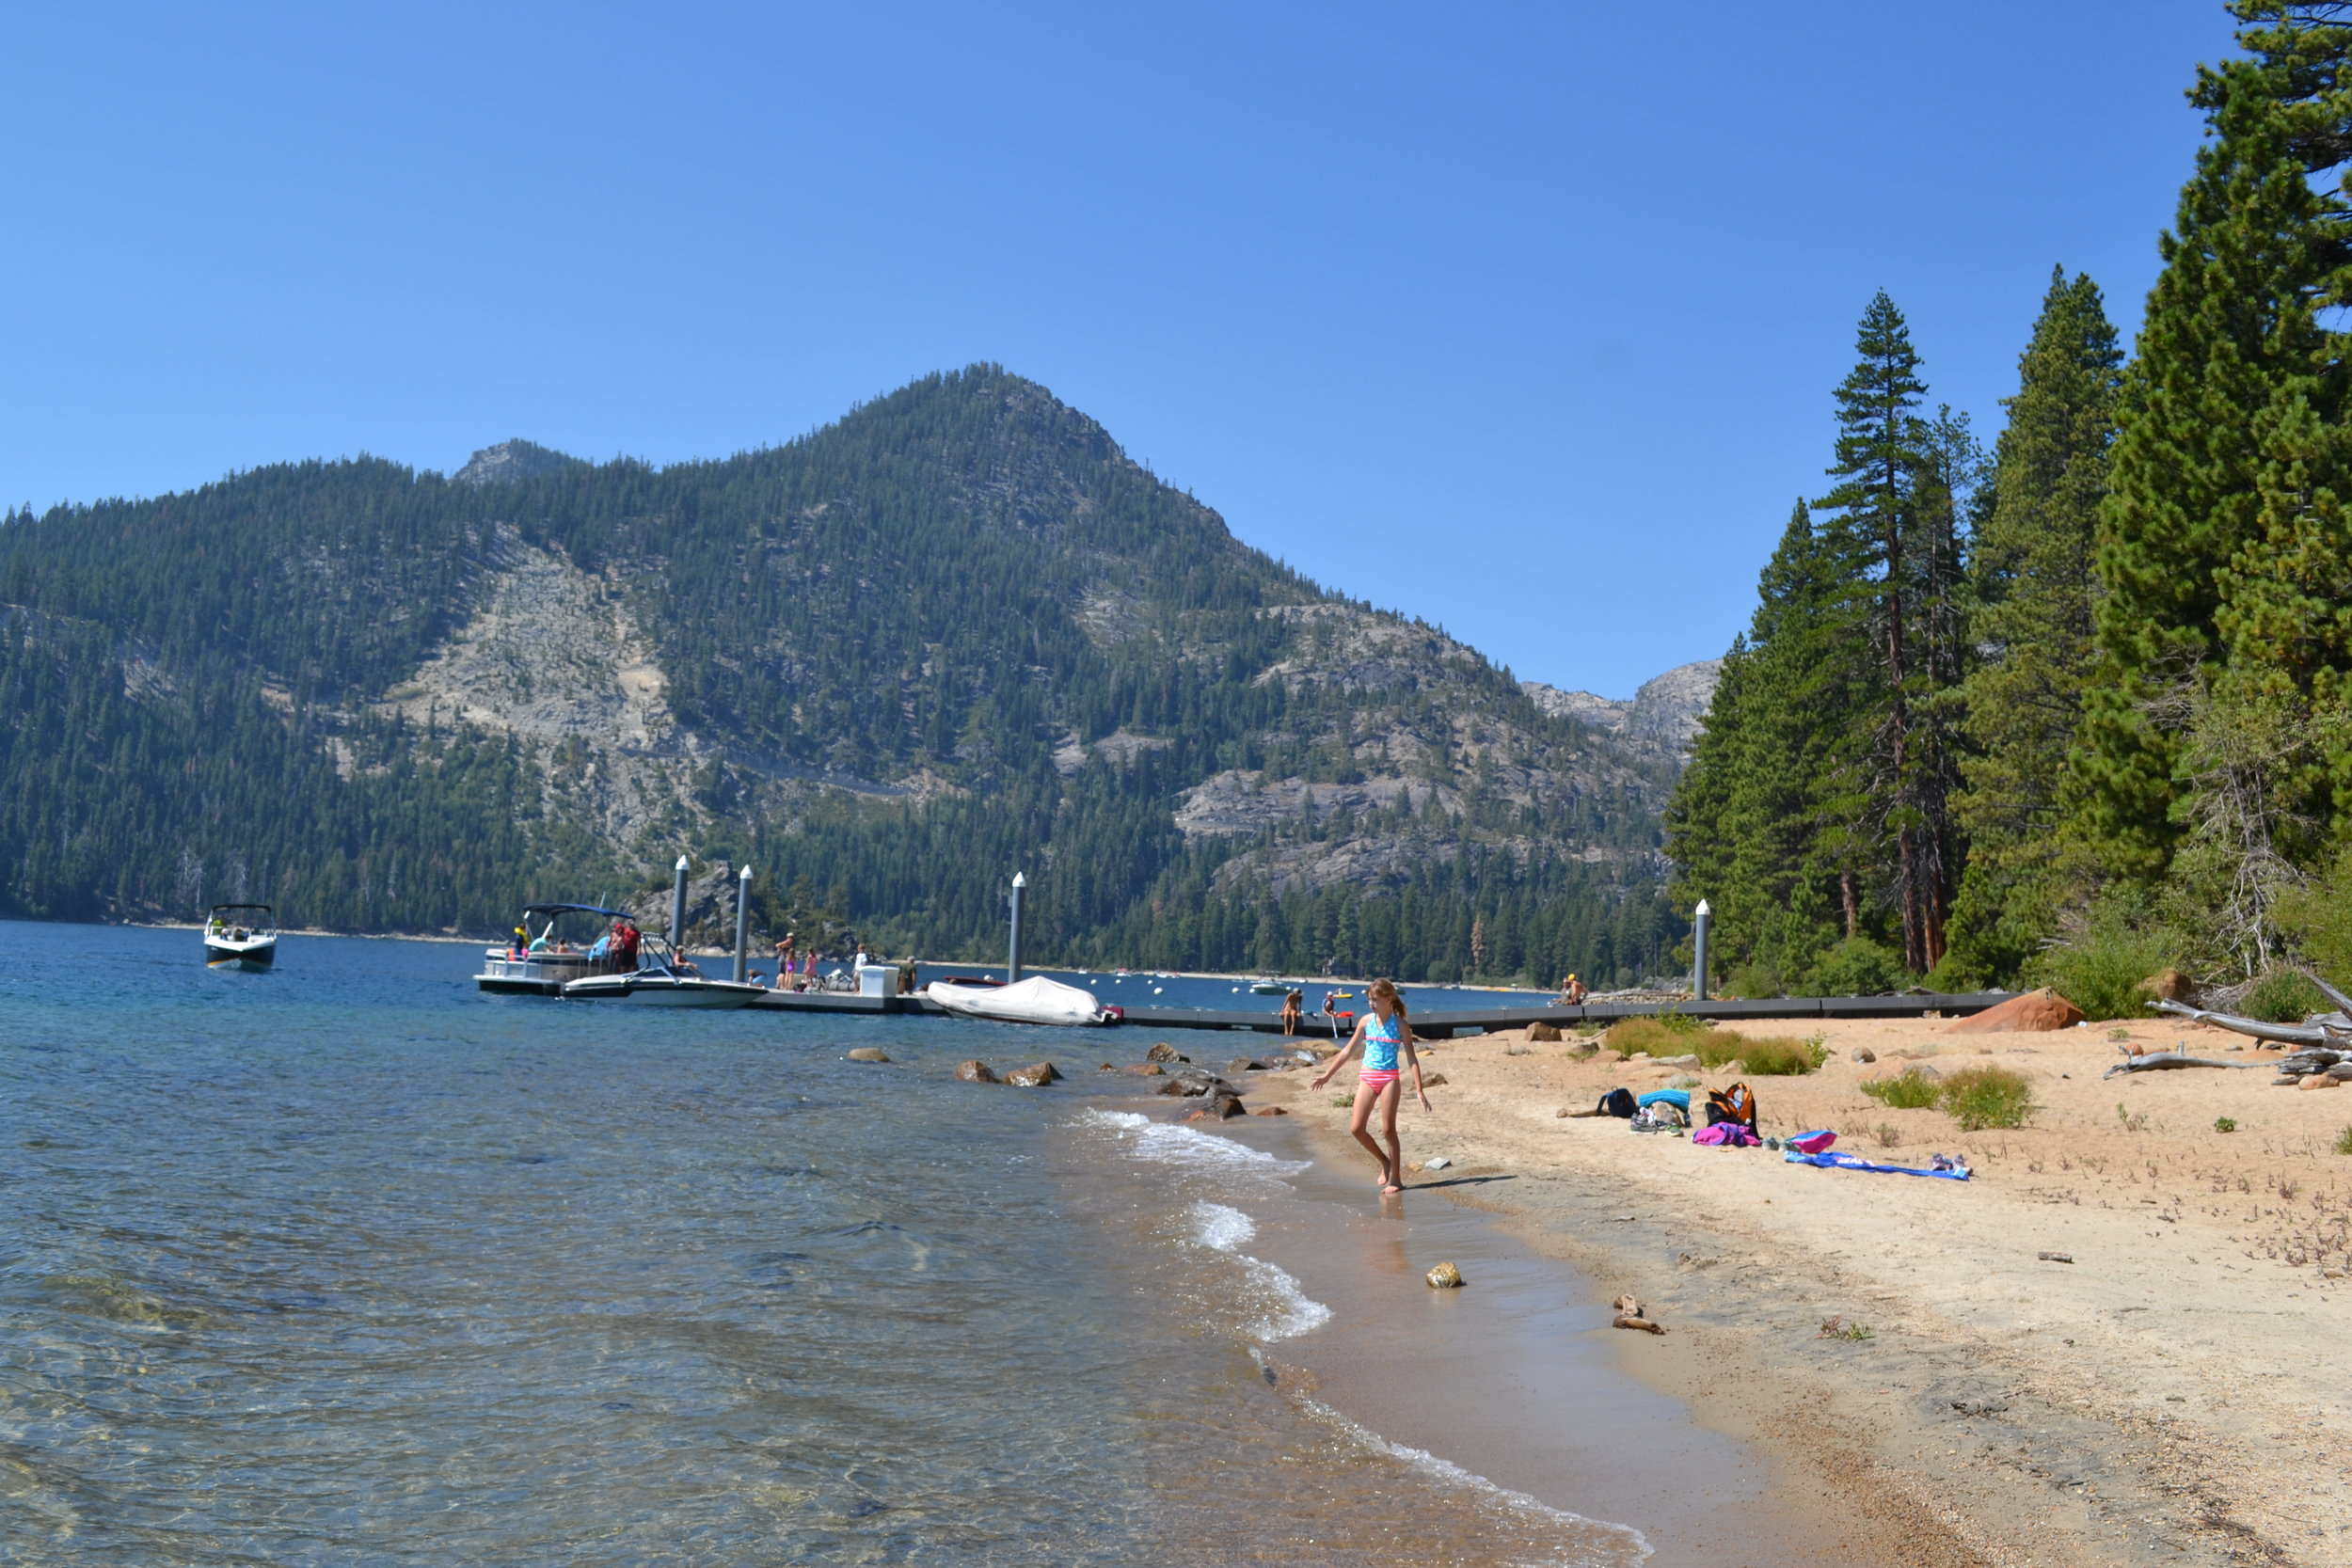 After living in LA for 15 yeas, we finally made it to Lake Tahoe!! It was very beautiful!